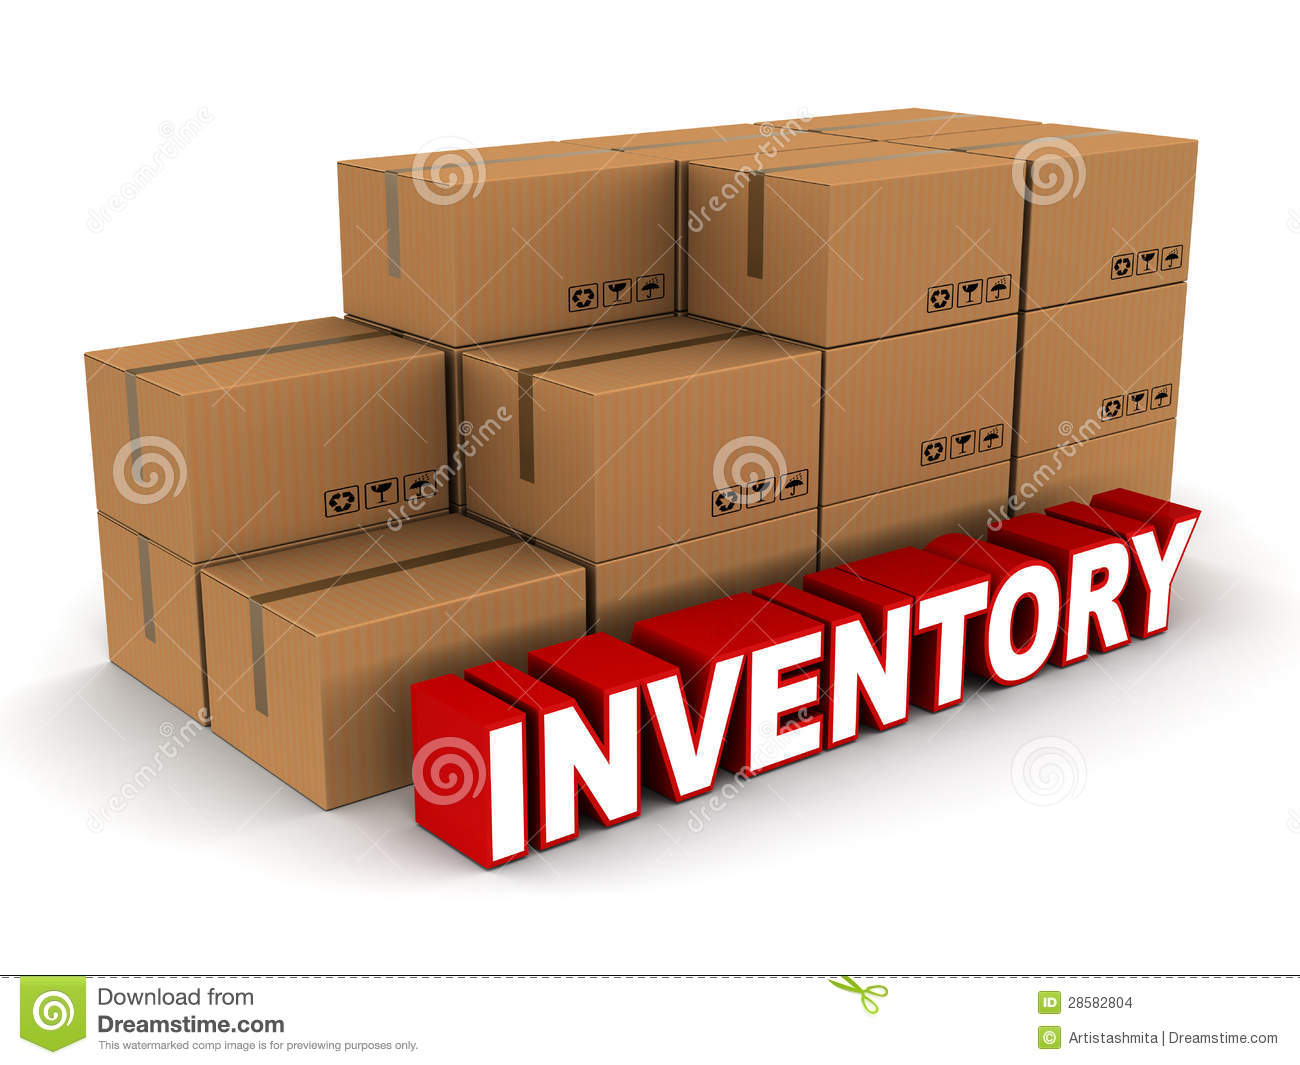 Inventory clipart - Clipground